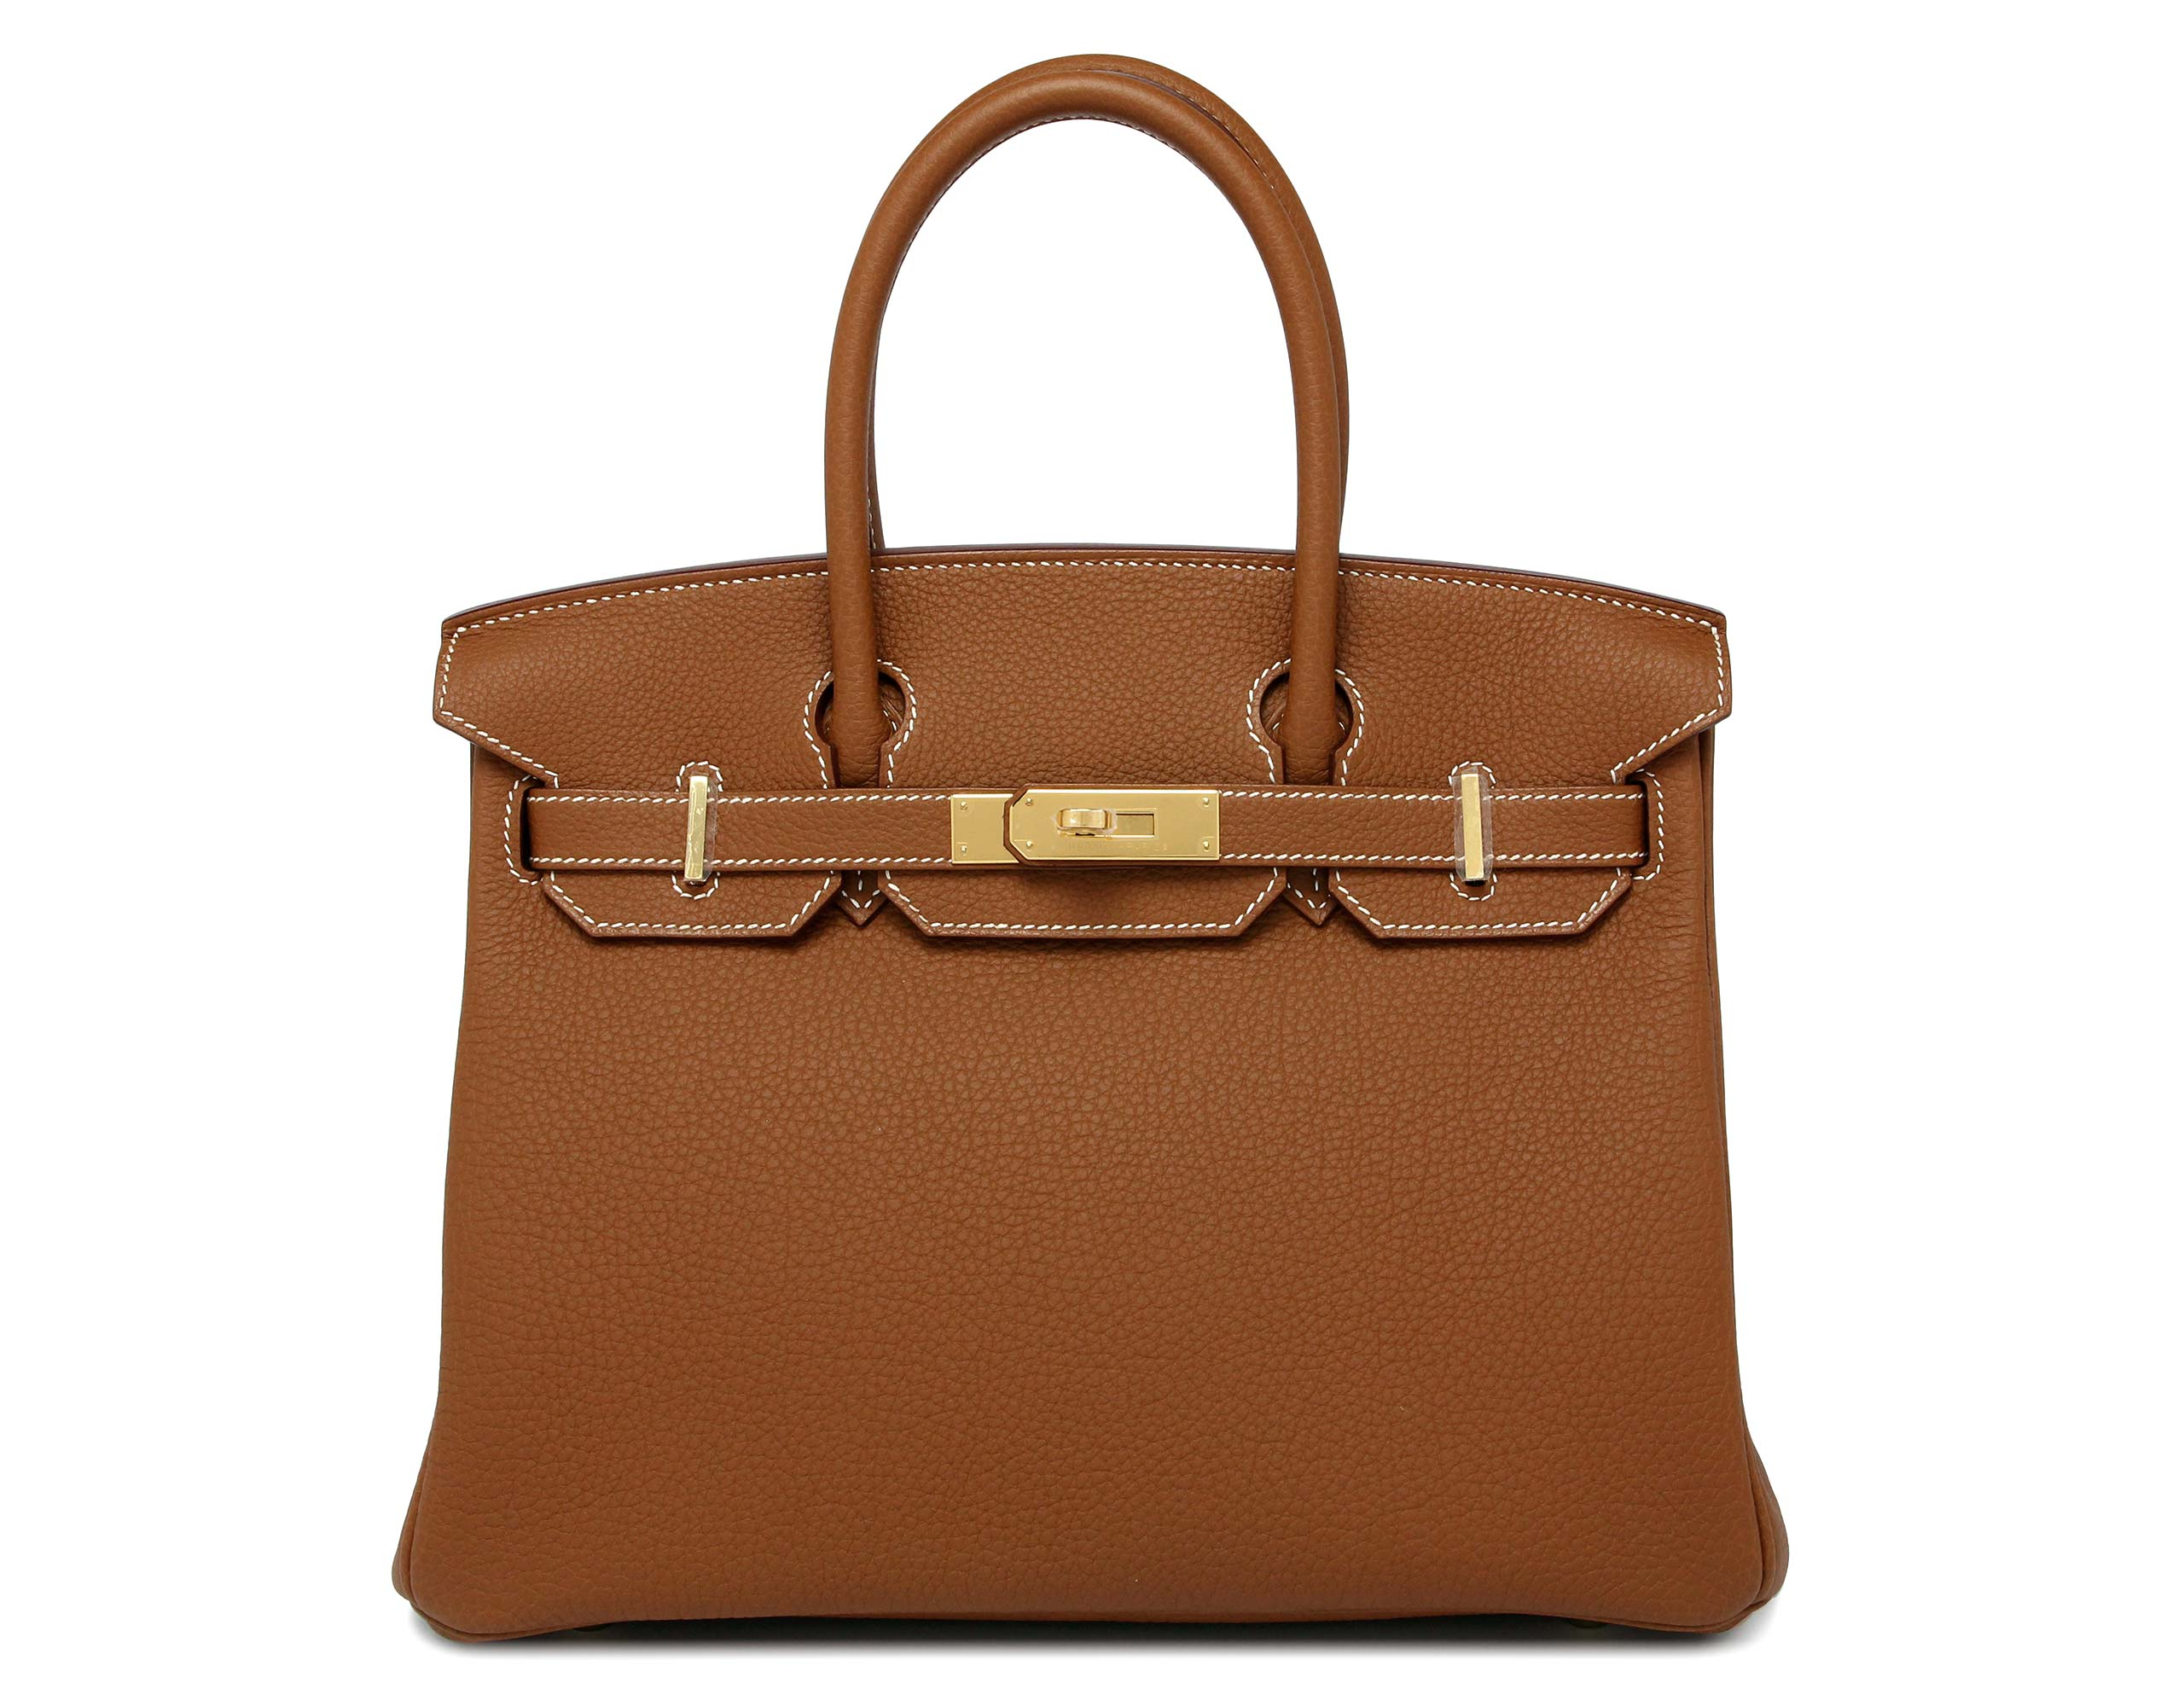 Hermes Birkin Gold Togo with Gold